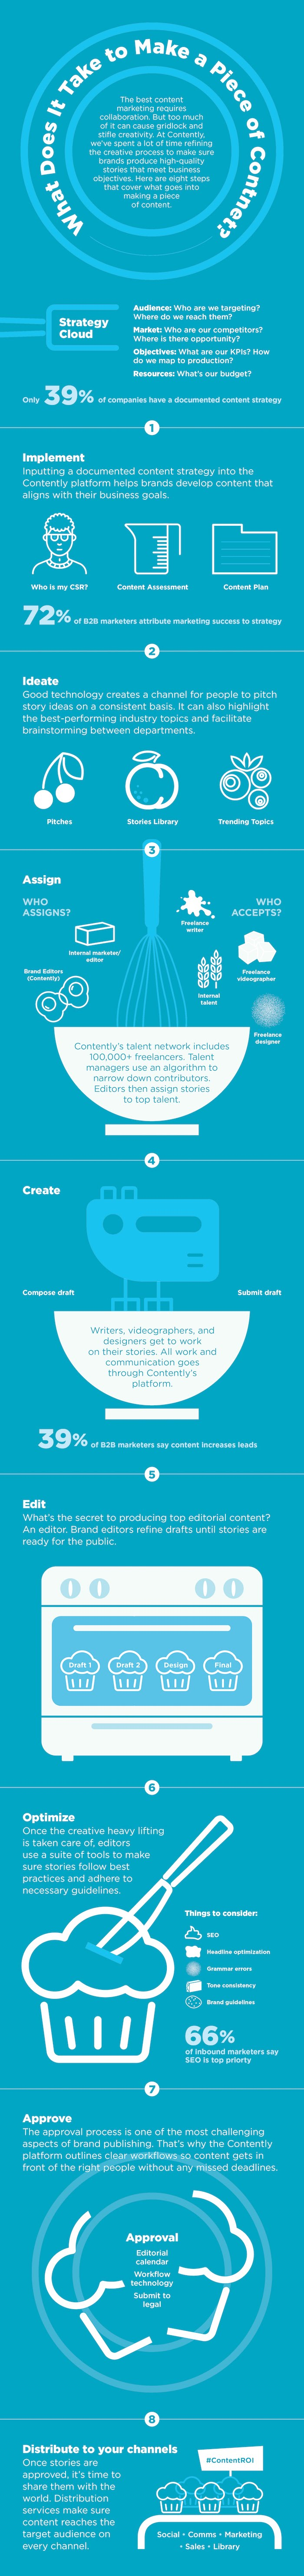 What It Takes to Create a Piece of Content #infographic